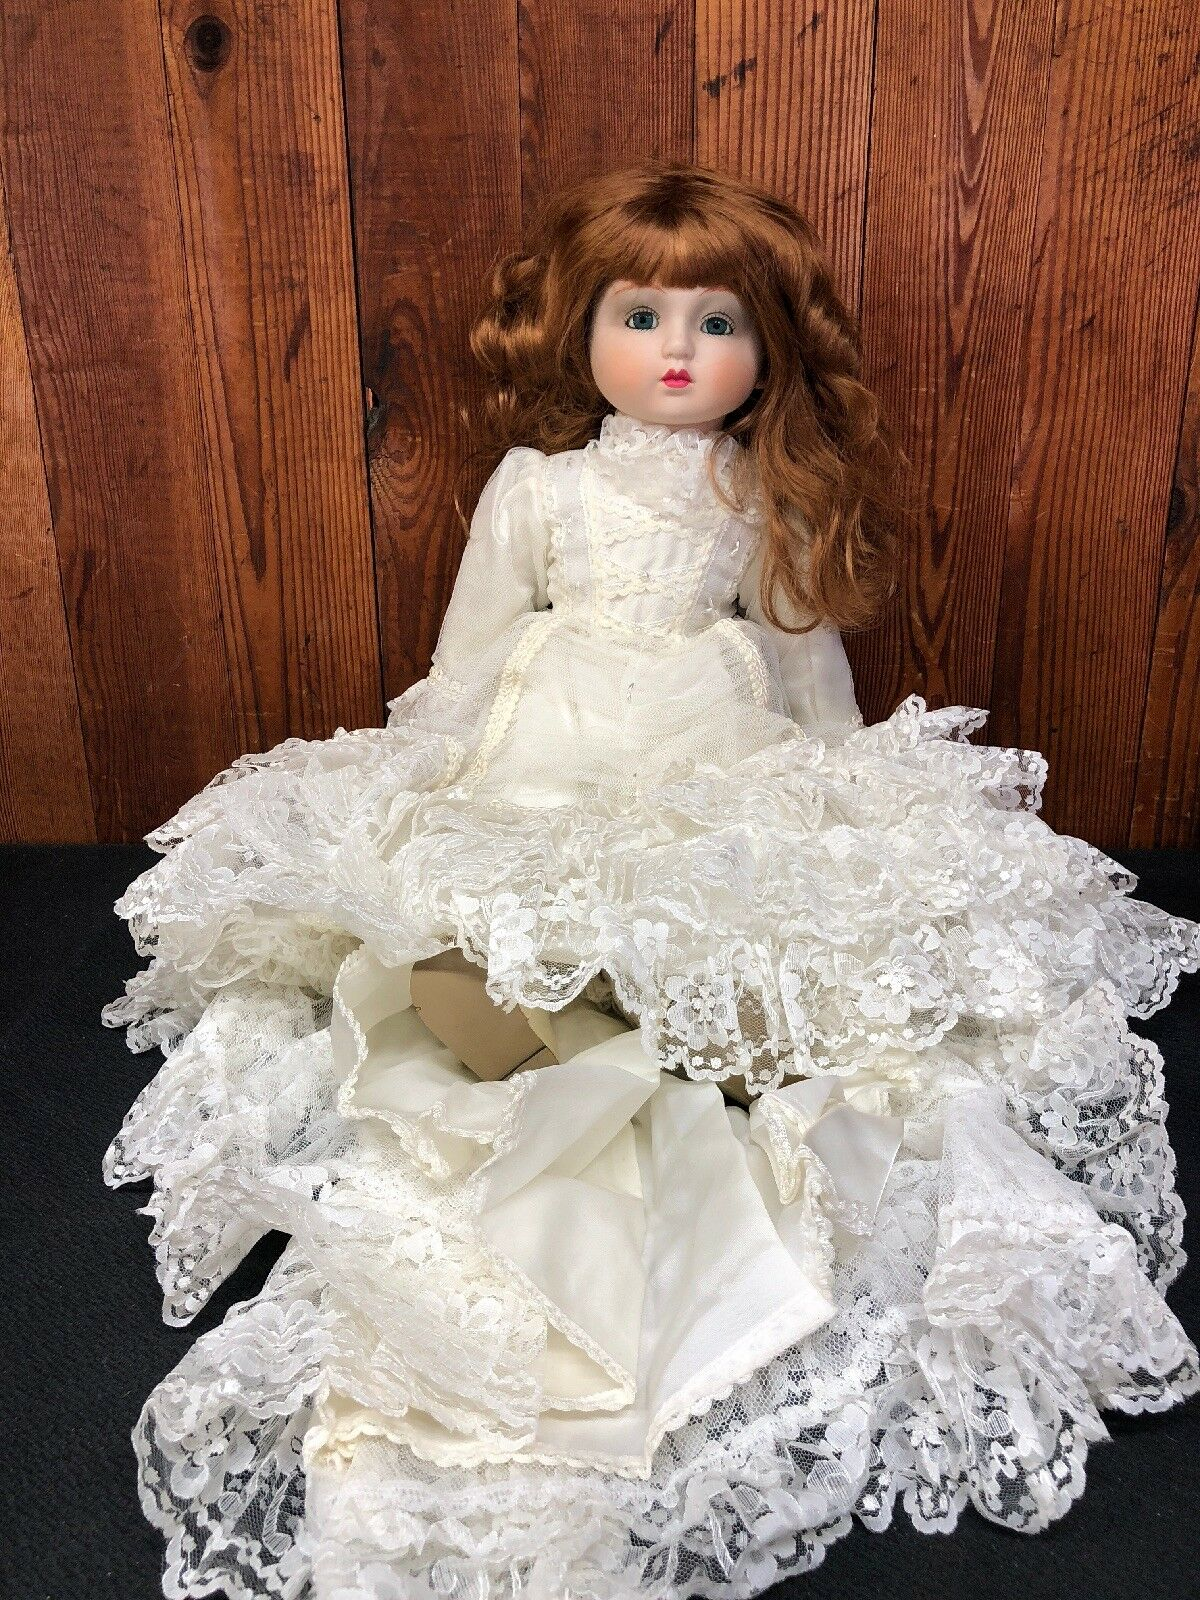 Porcelain Bride Doll- 2 Foot Doll- Beautiful Train and Veil